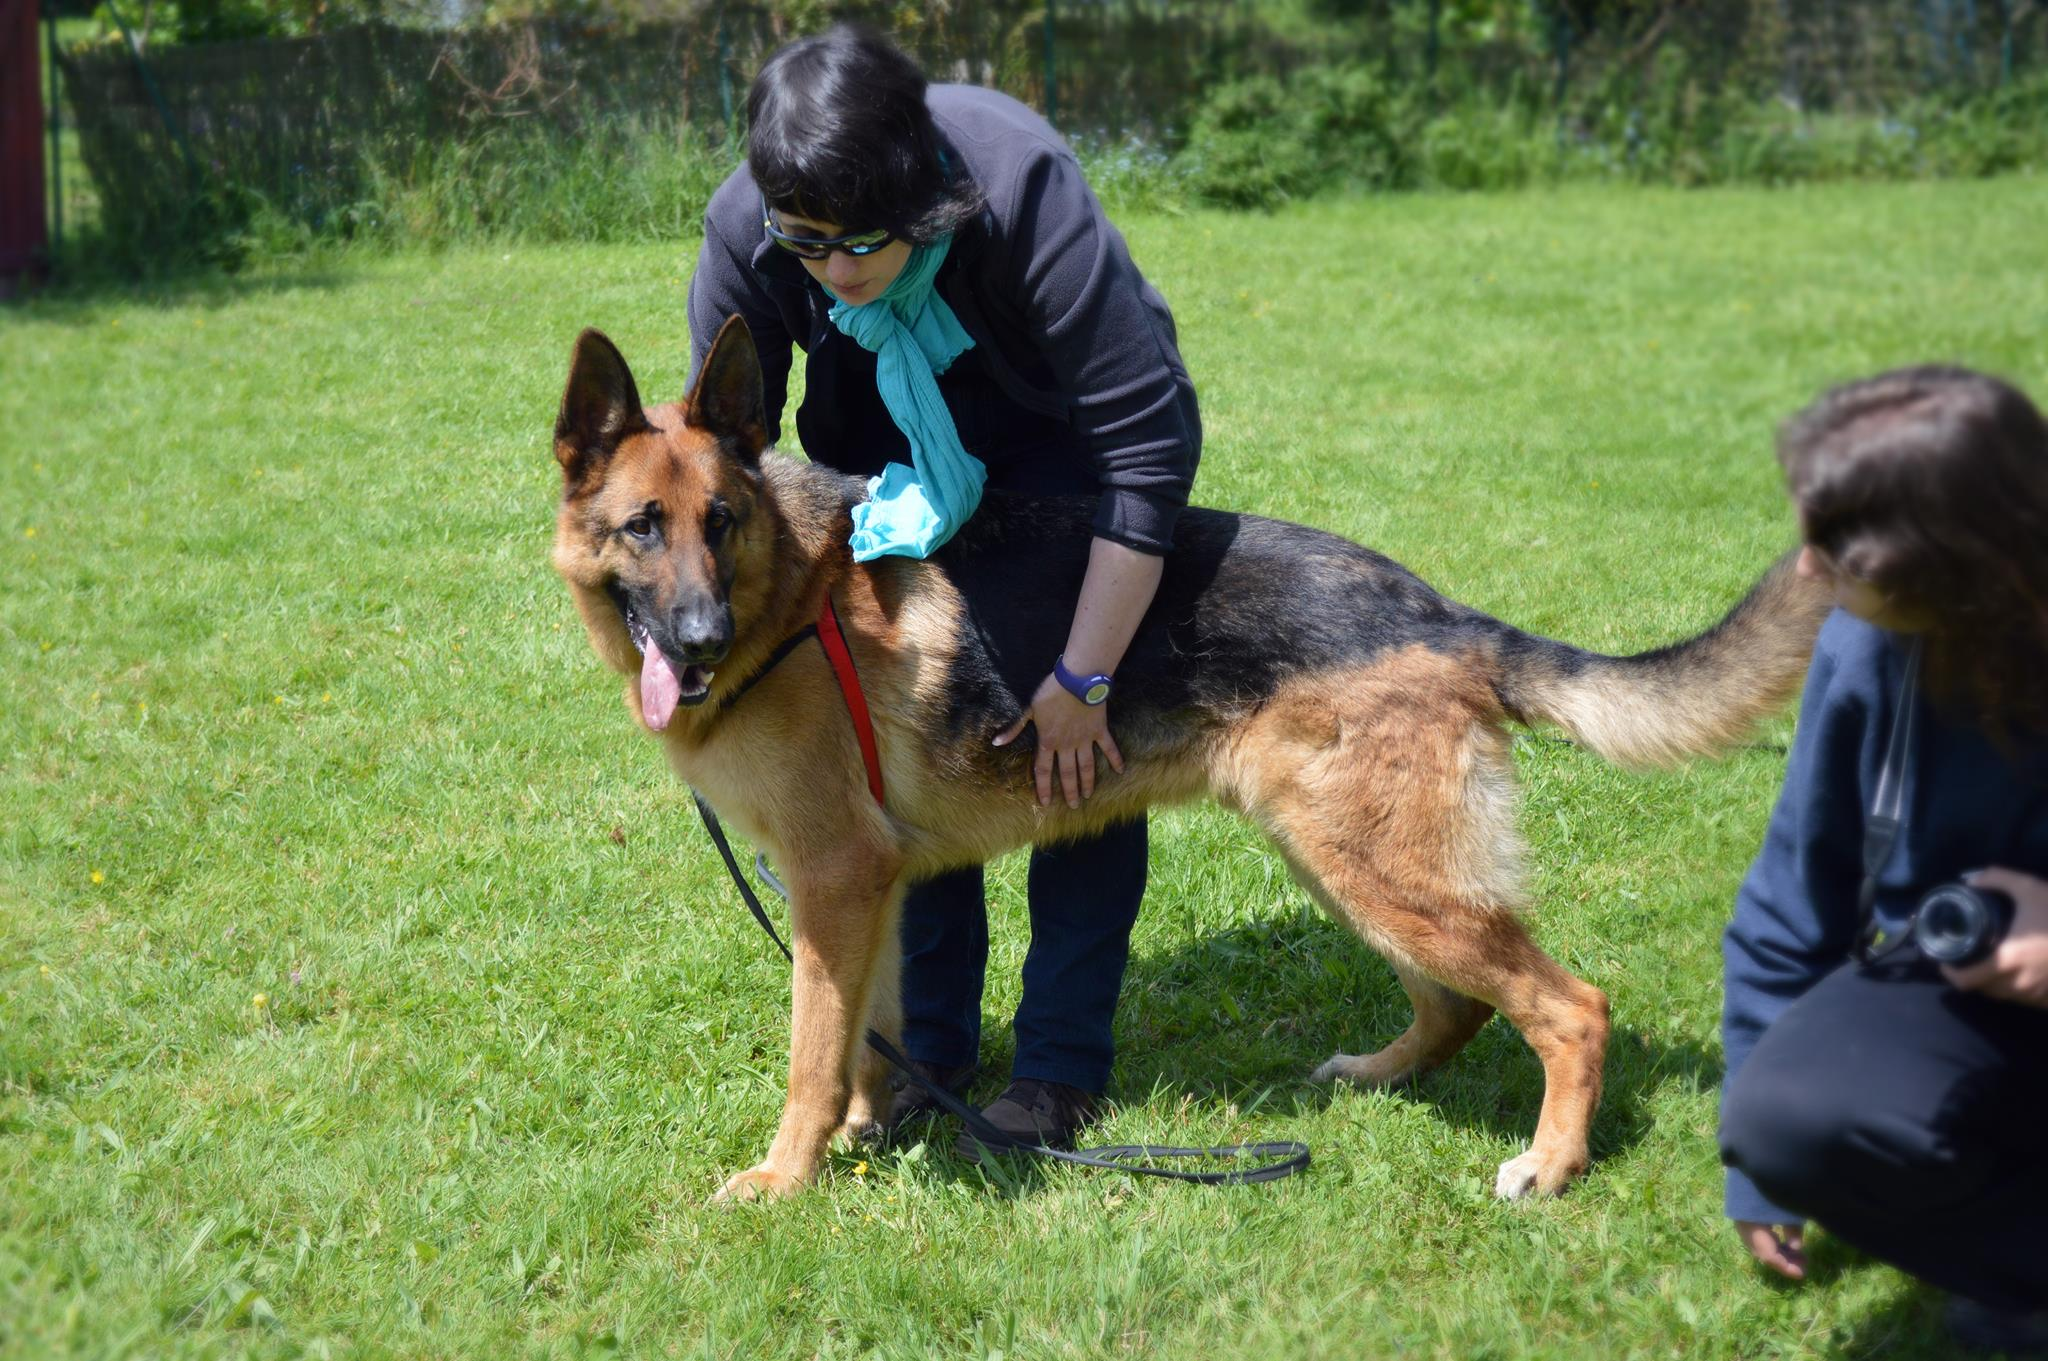 iovis , berger allemand , ars canis image , education canine 35 , dressage chien 35